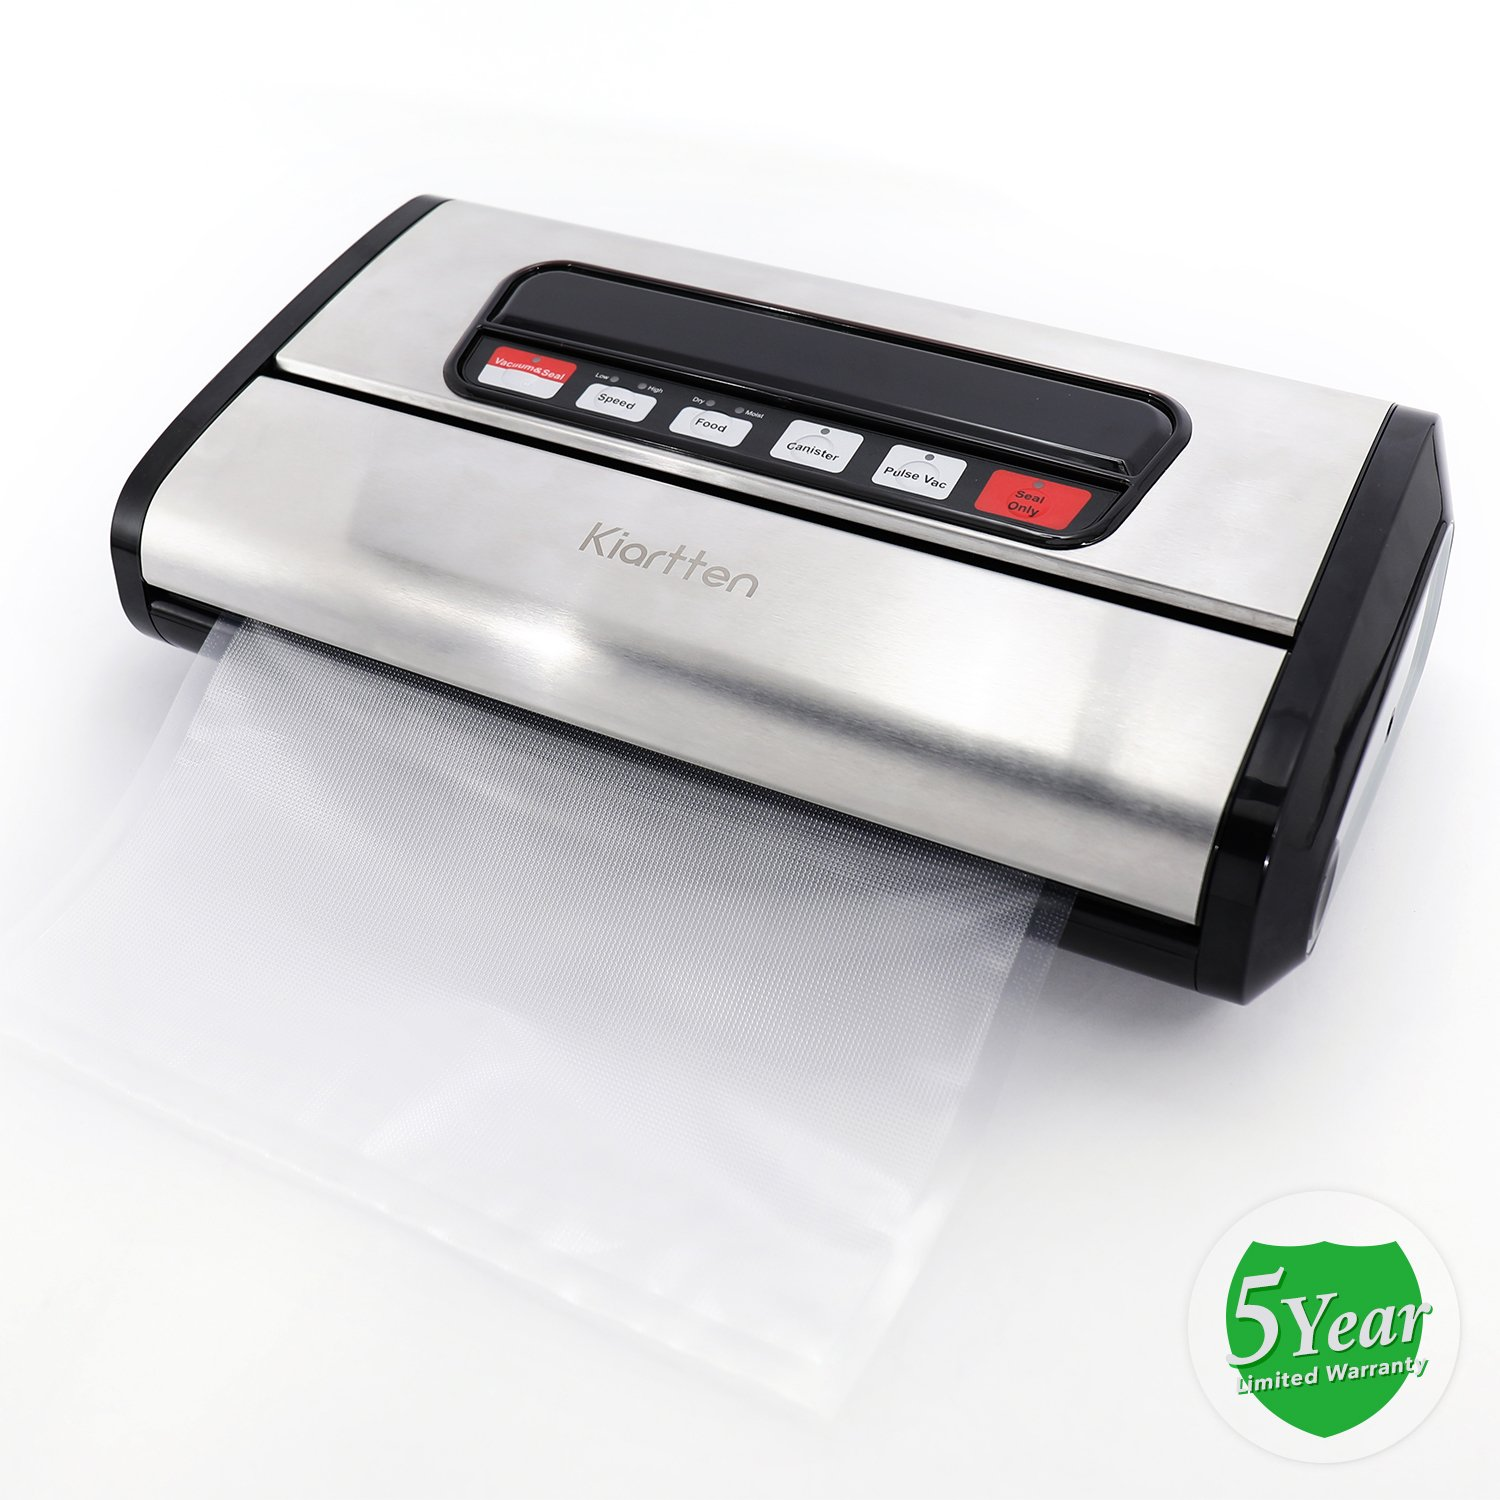 Kiartten Vacuum Sealer, A Fresh Food Locker for Your Kitchen. Keeps Food Fresh Up To 5X Longer. (Stainless Steel) by Spreaze (Image #8)